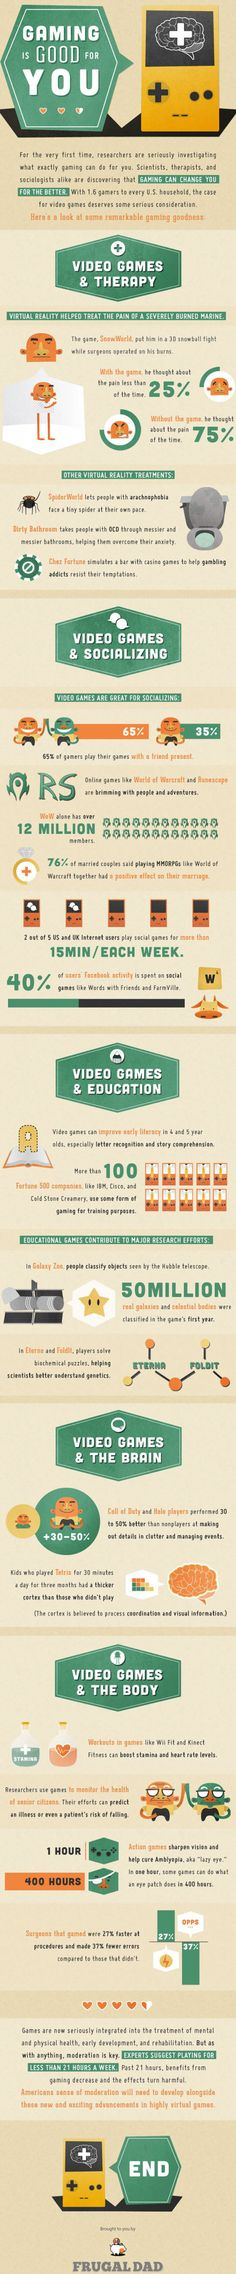 Why gaming is good for you.